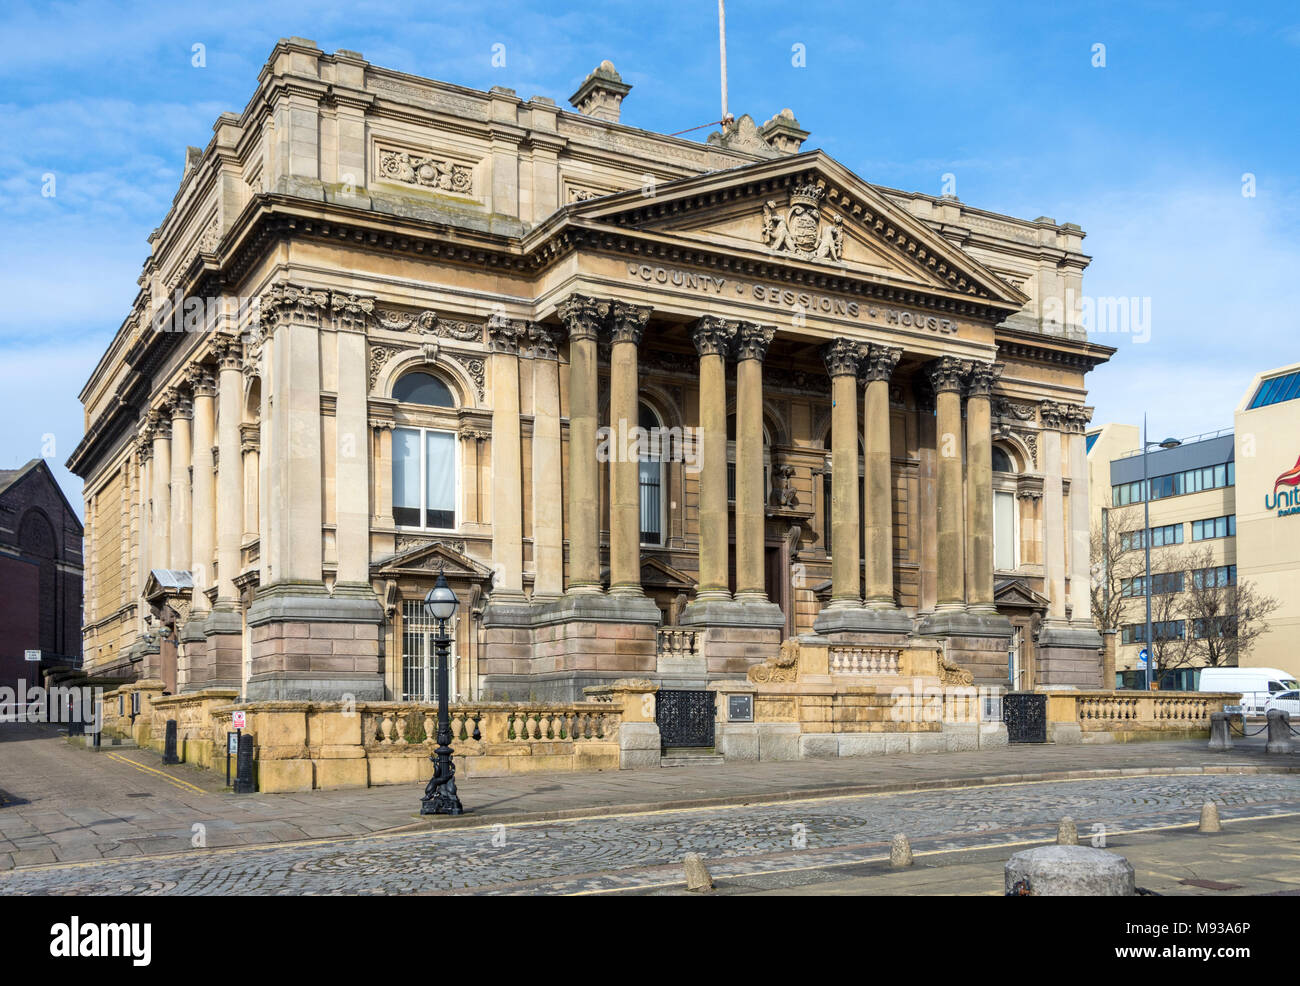 The County Sessions House, William Brown Street, Liverpool, England, UK - Stock Image